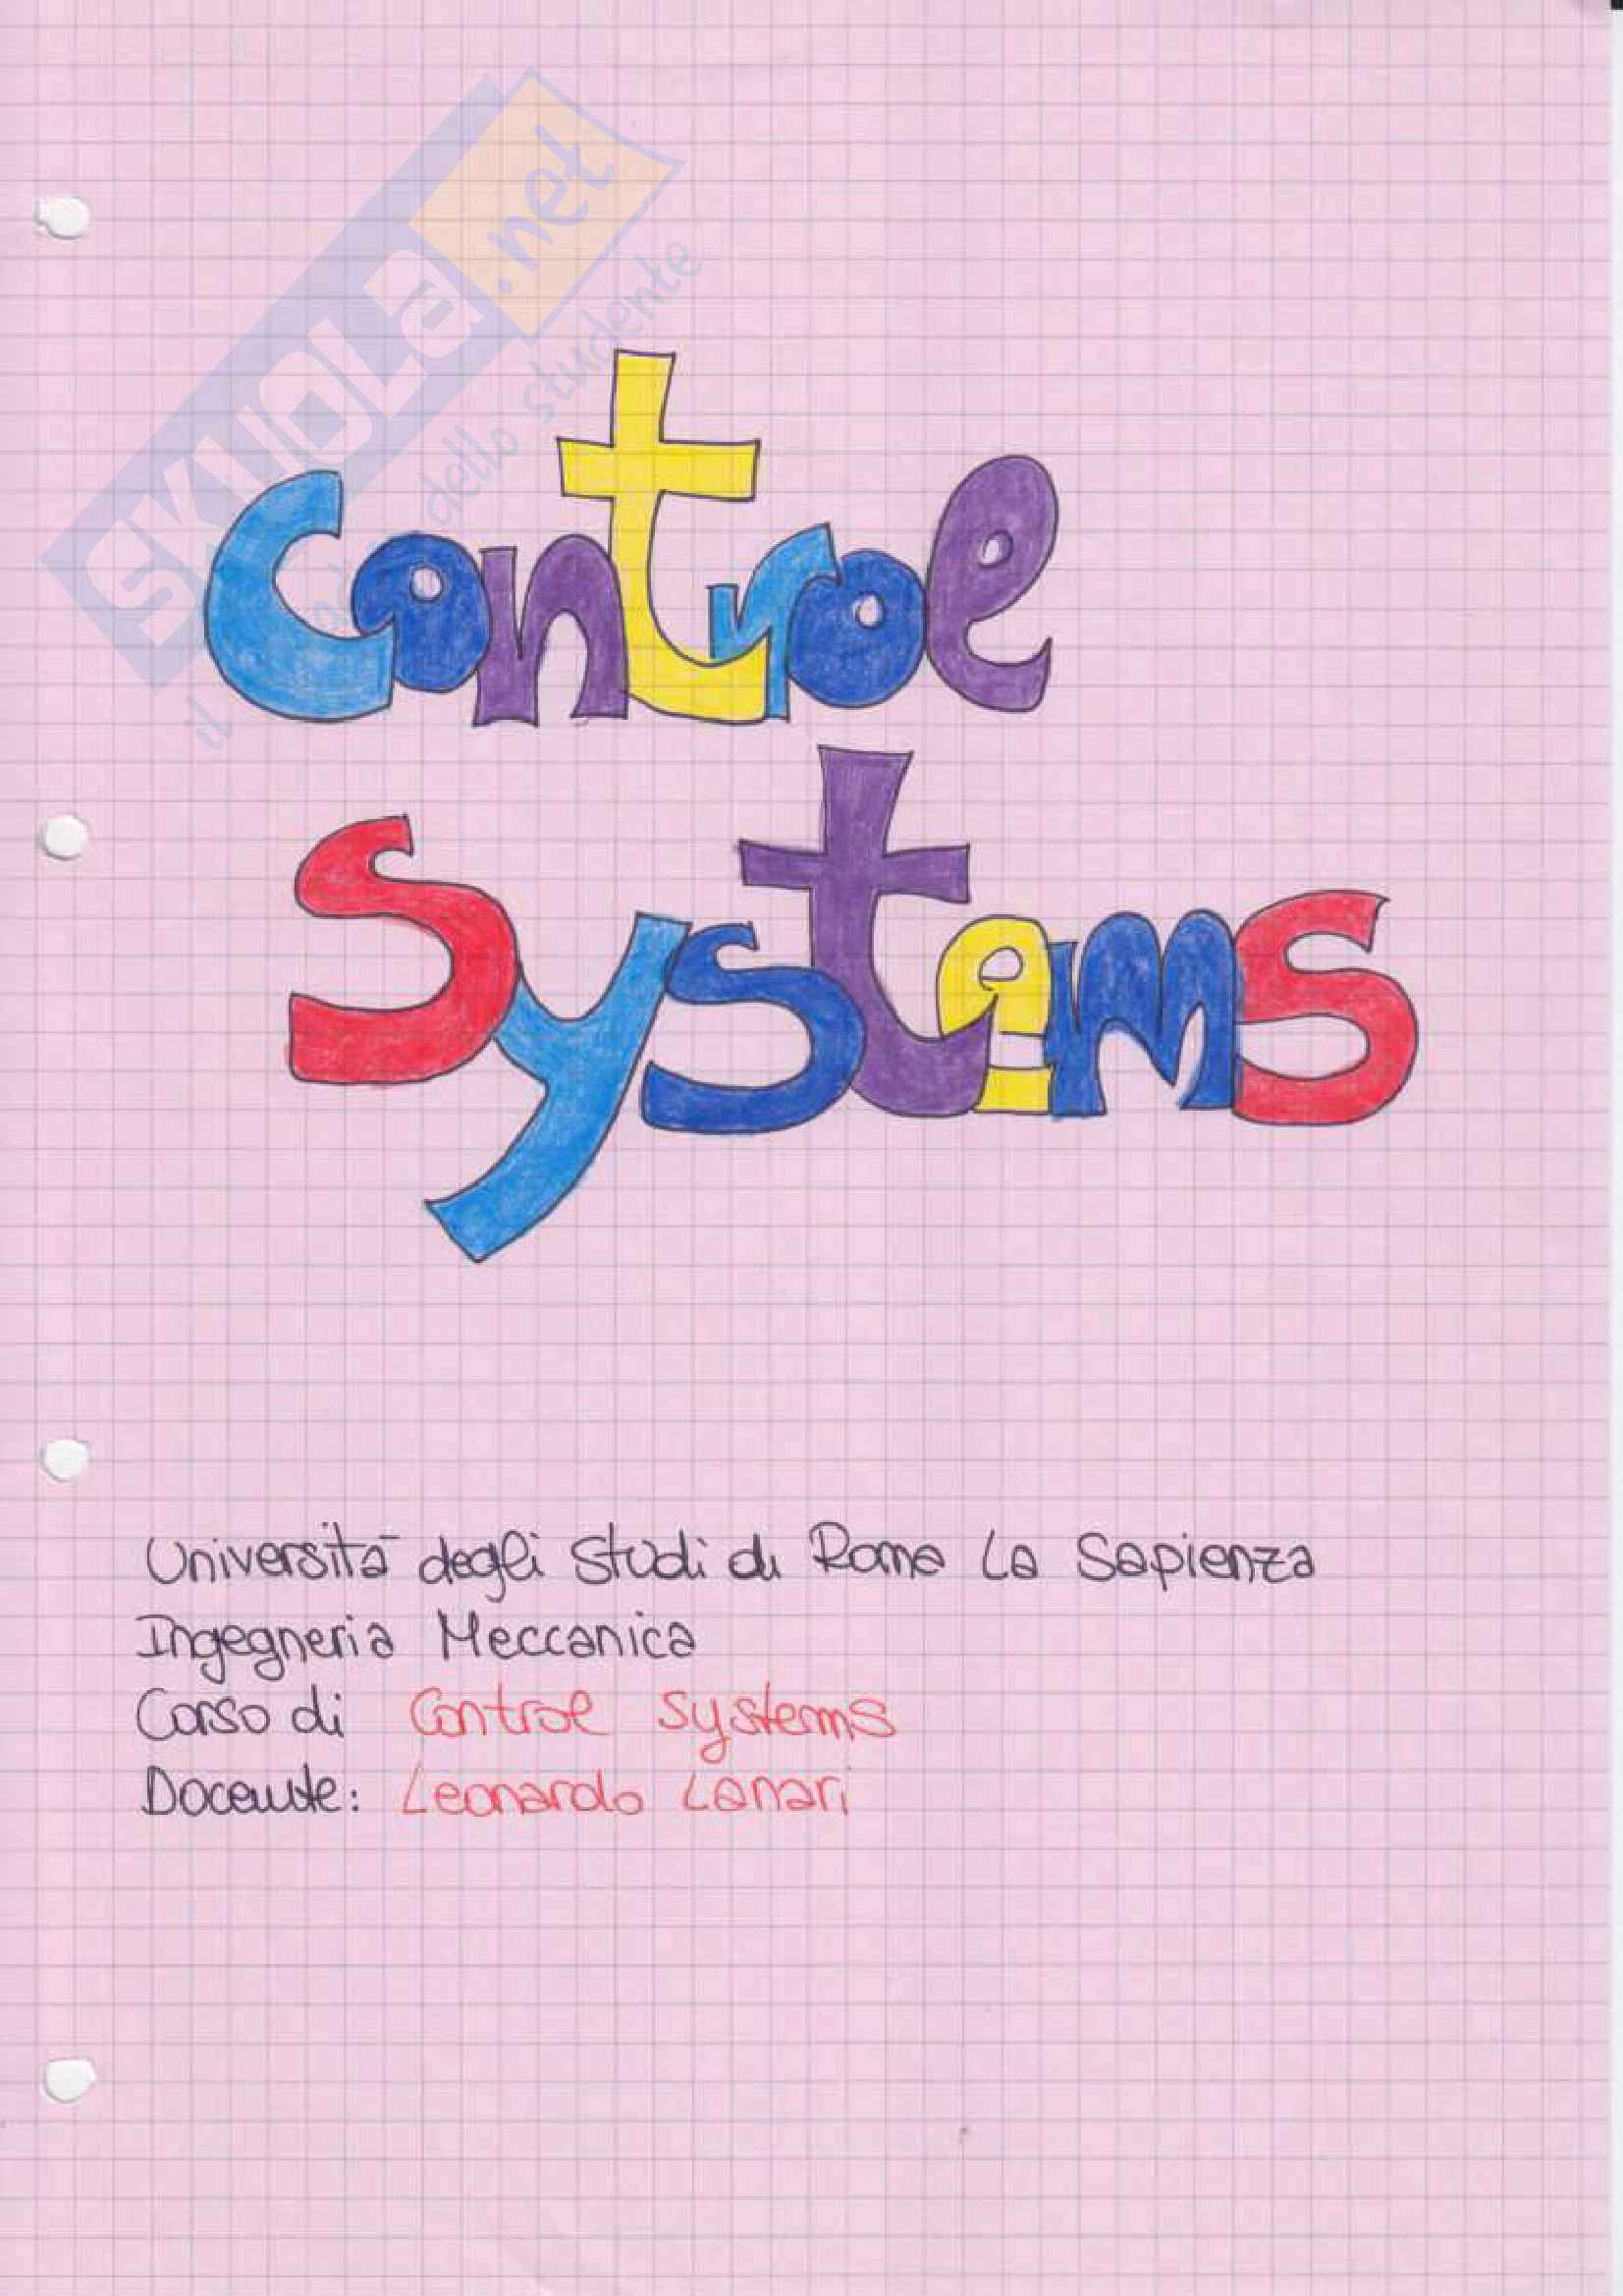 Control Systems - Appunti